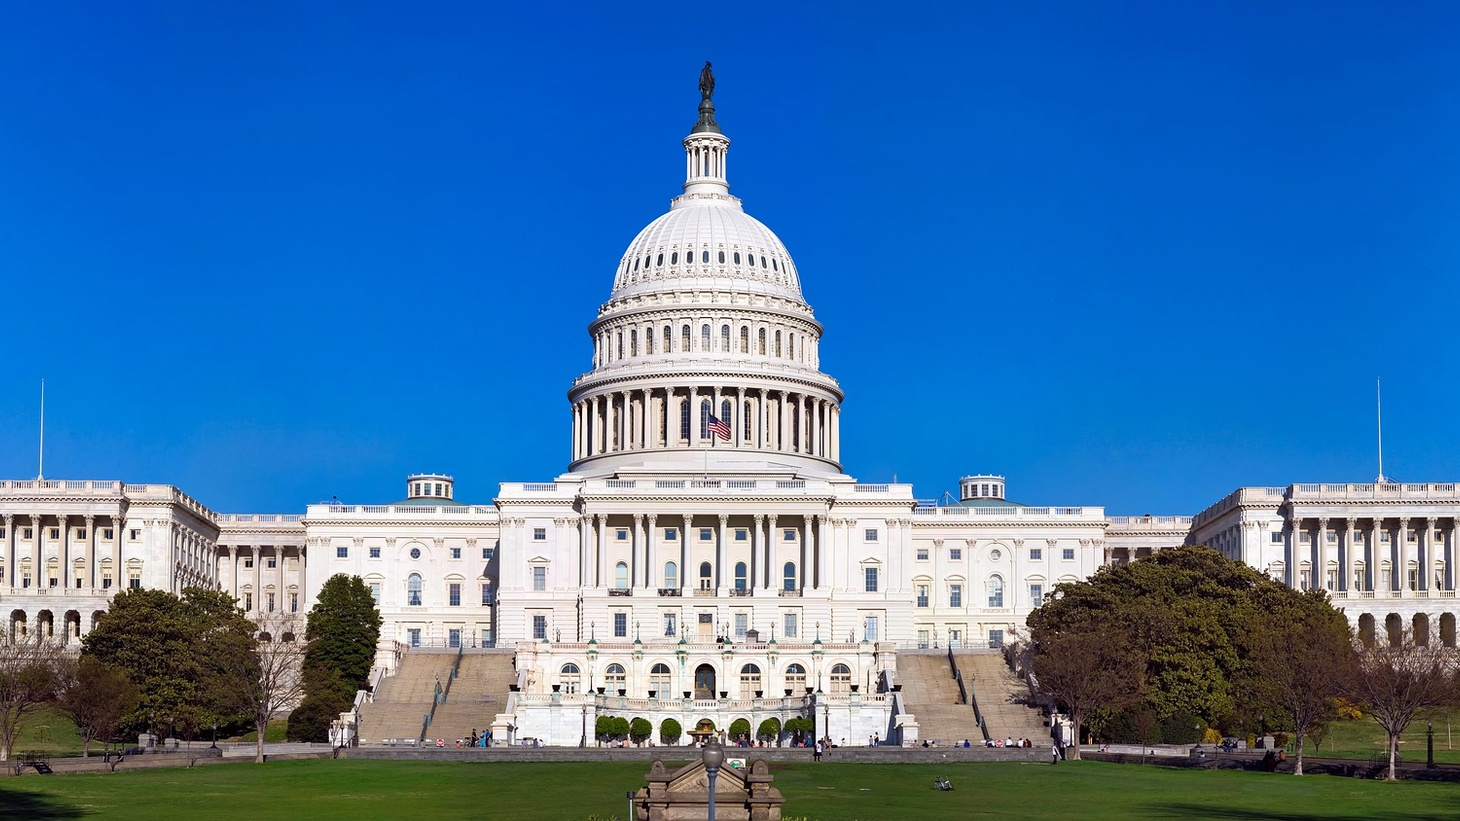 Negotiations continue today between Congress and the White House over the next coronavirus relief package.